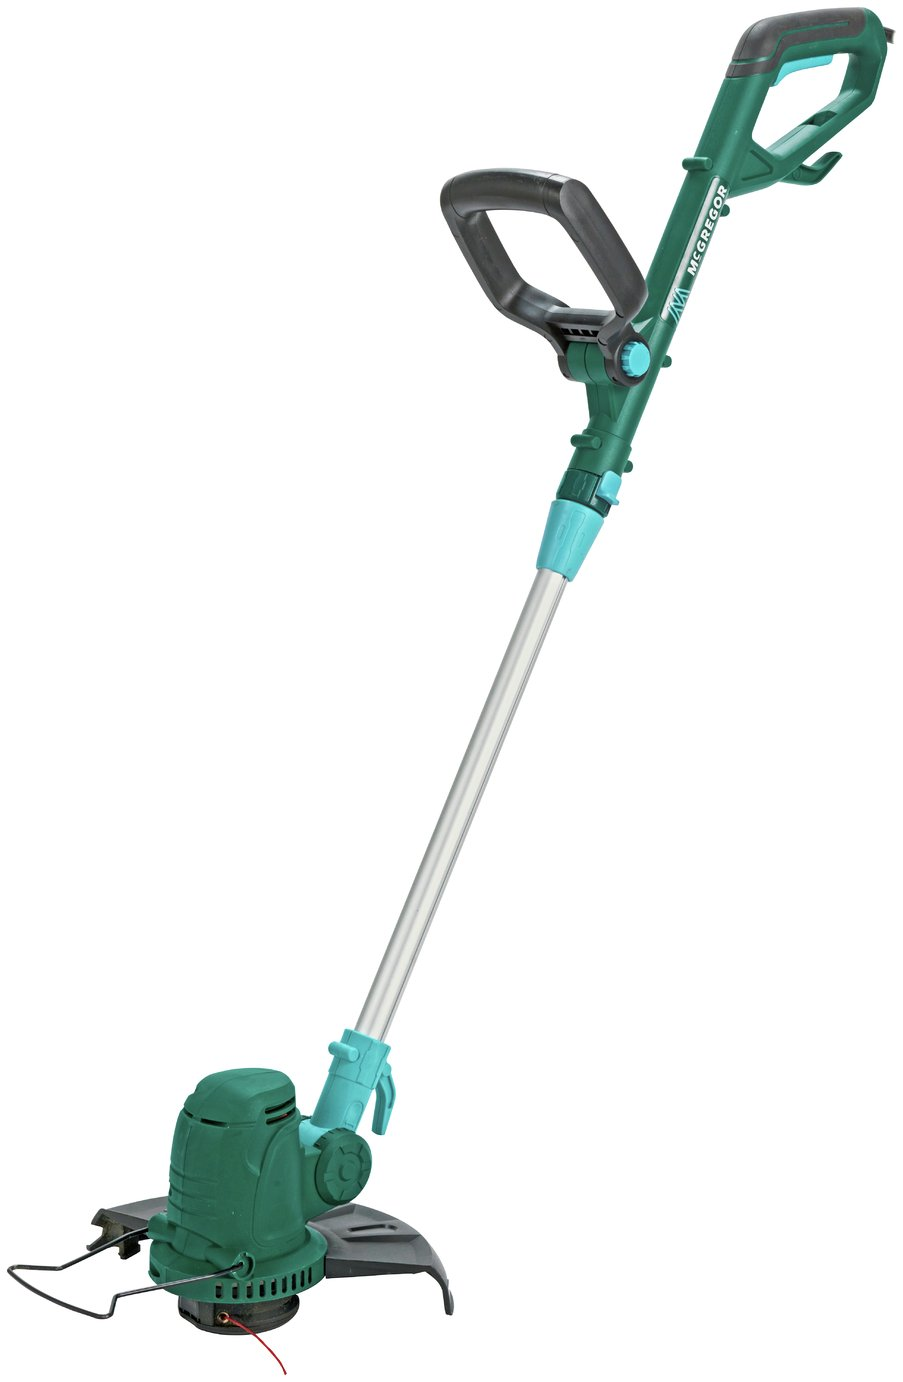 McGregor 3-in-1 30cm Corded Grass Trimmer - 450W